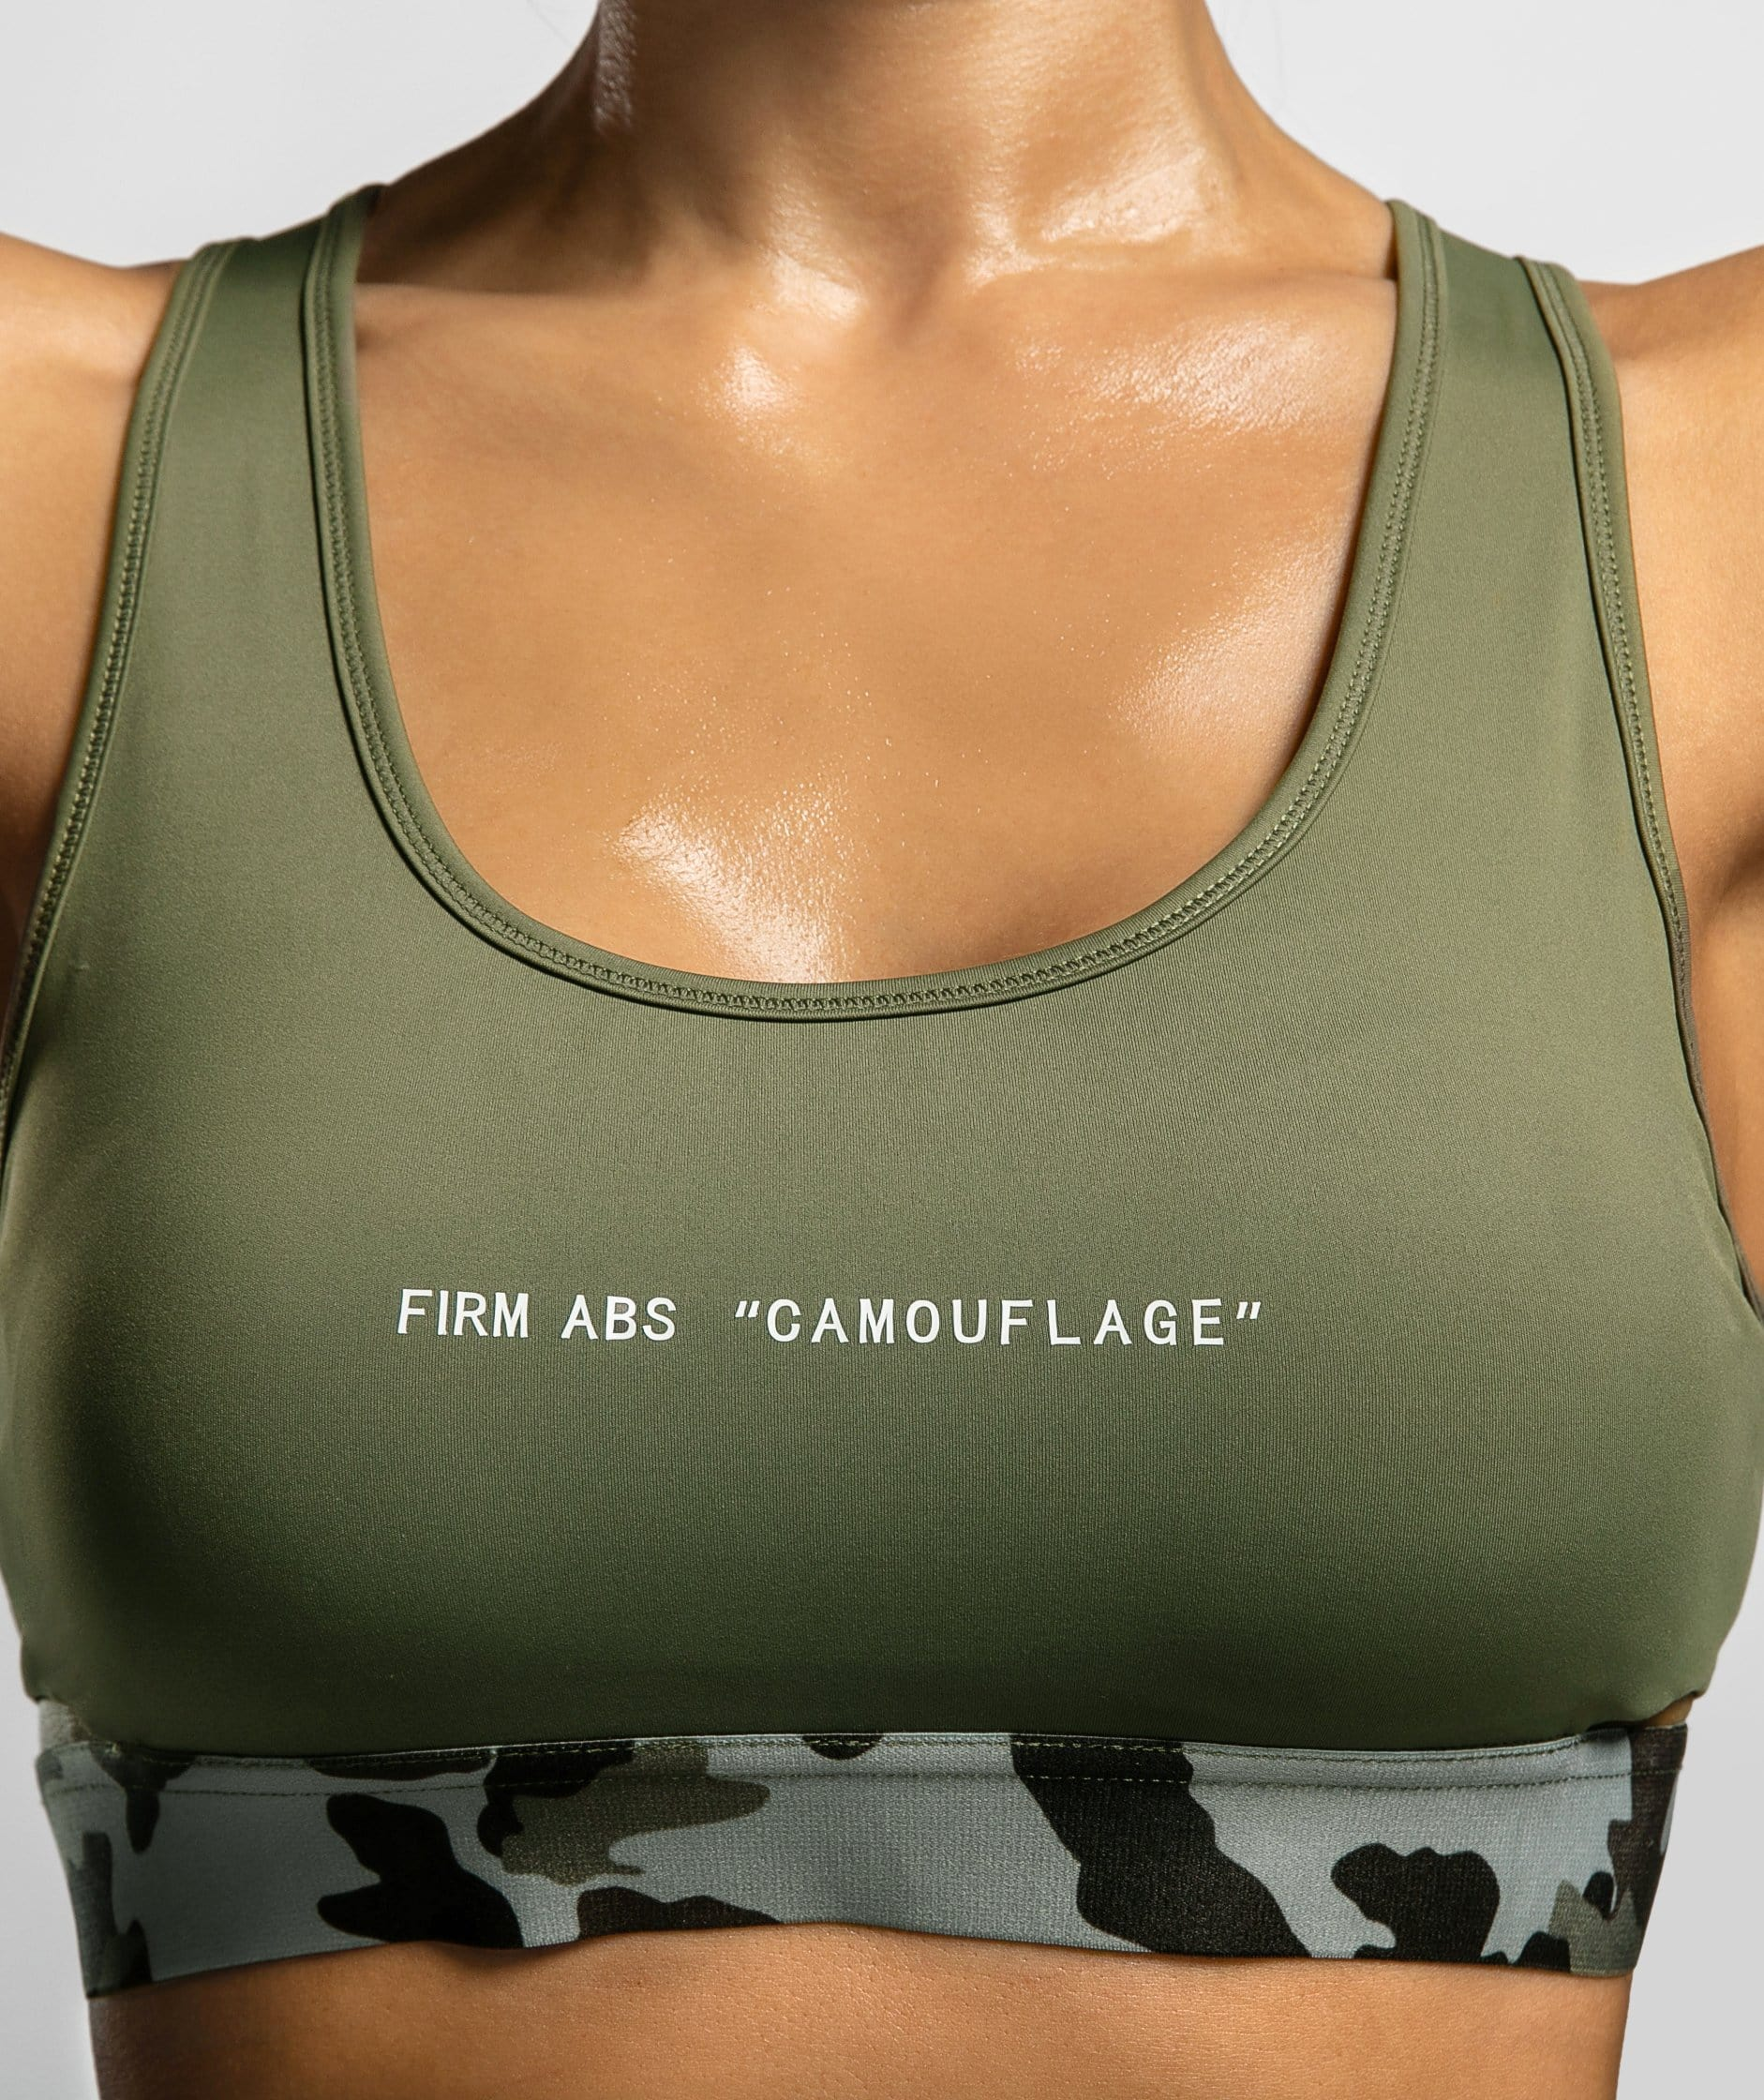 Camo Active Sport Bras - Deliver to U.S. Only - Firm Abs Fitness